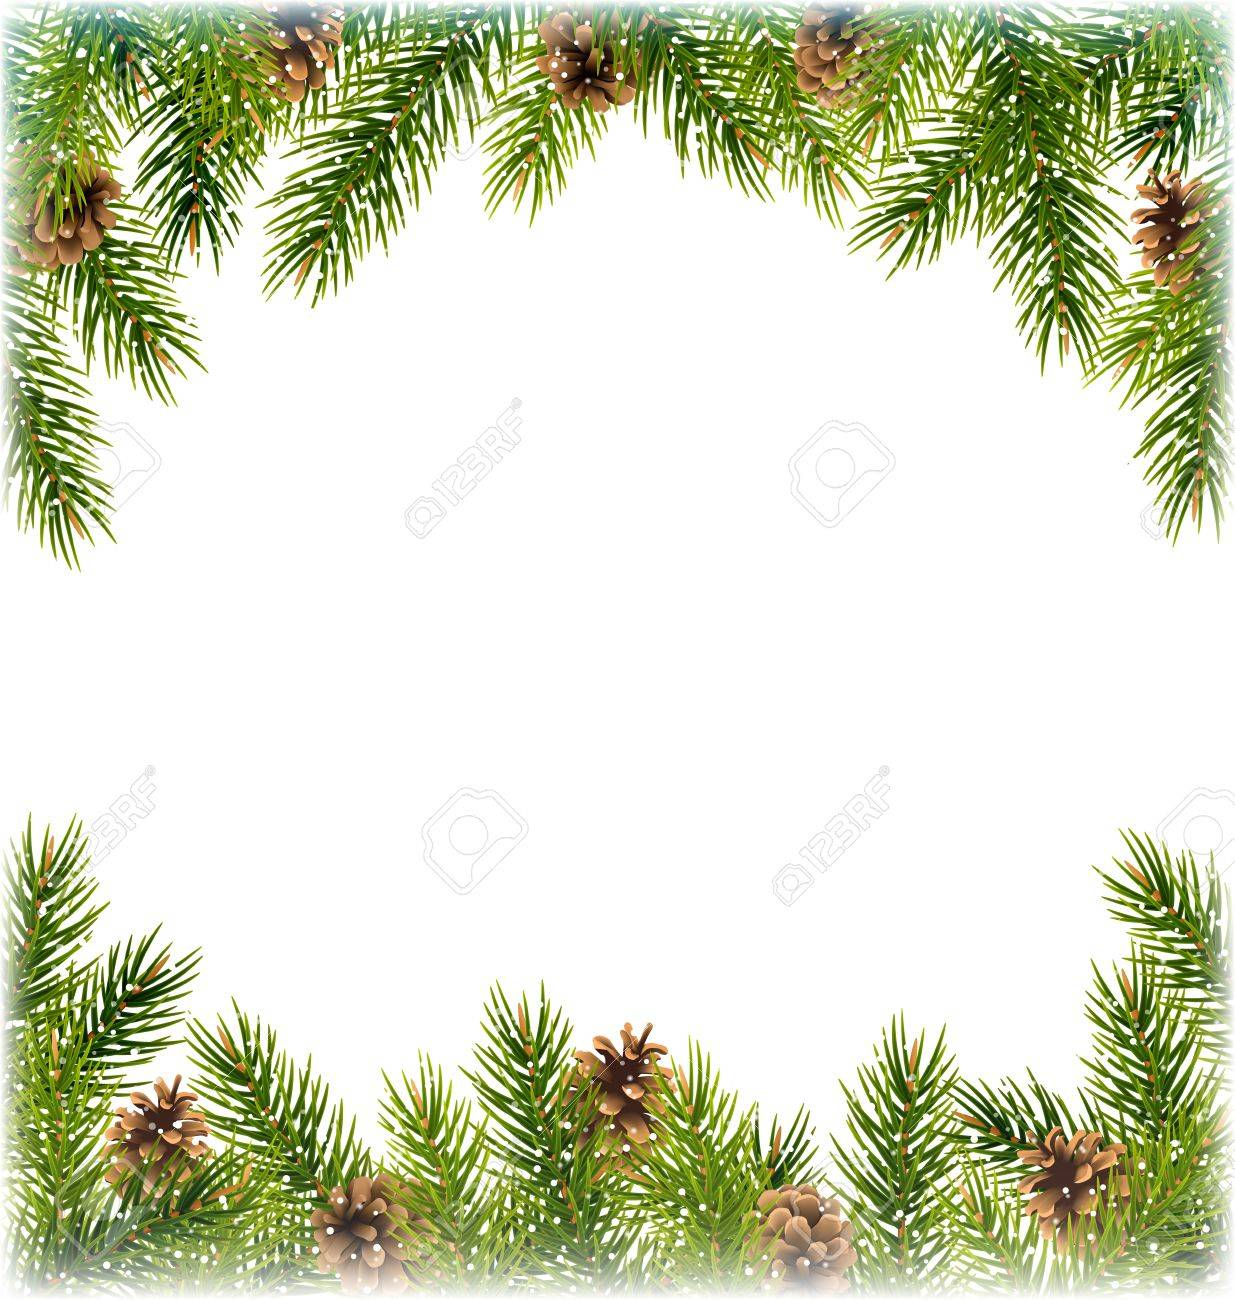 Green Christmas Tree Pine Branches With Pinecones Like Frame ...